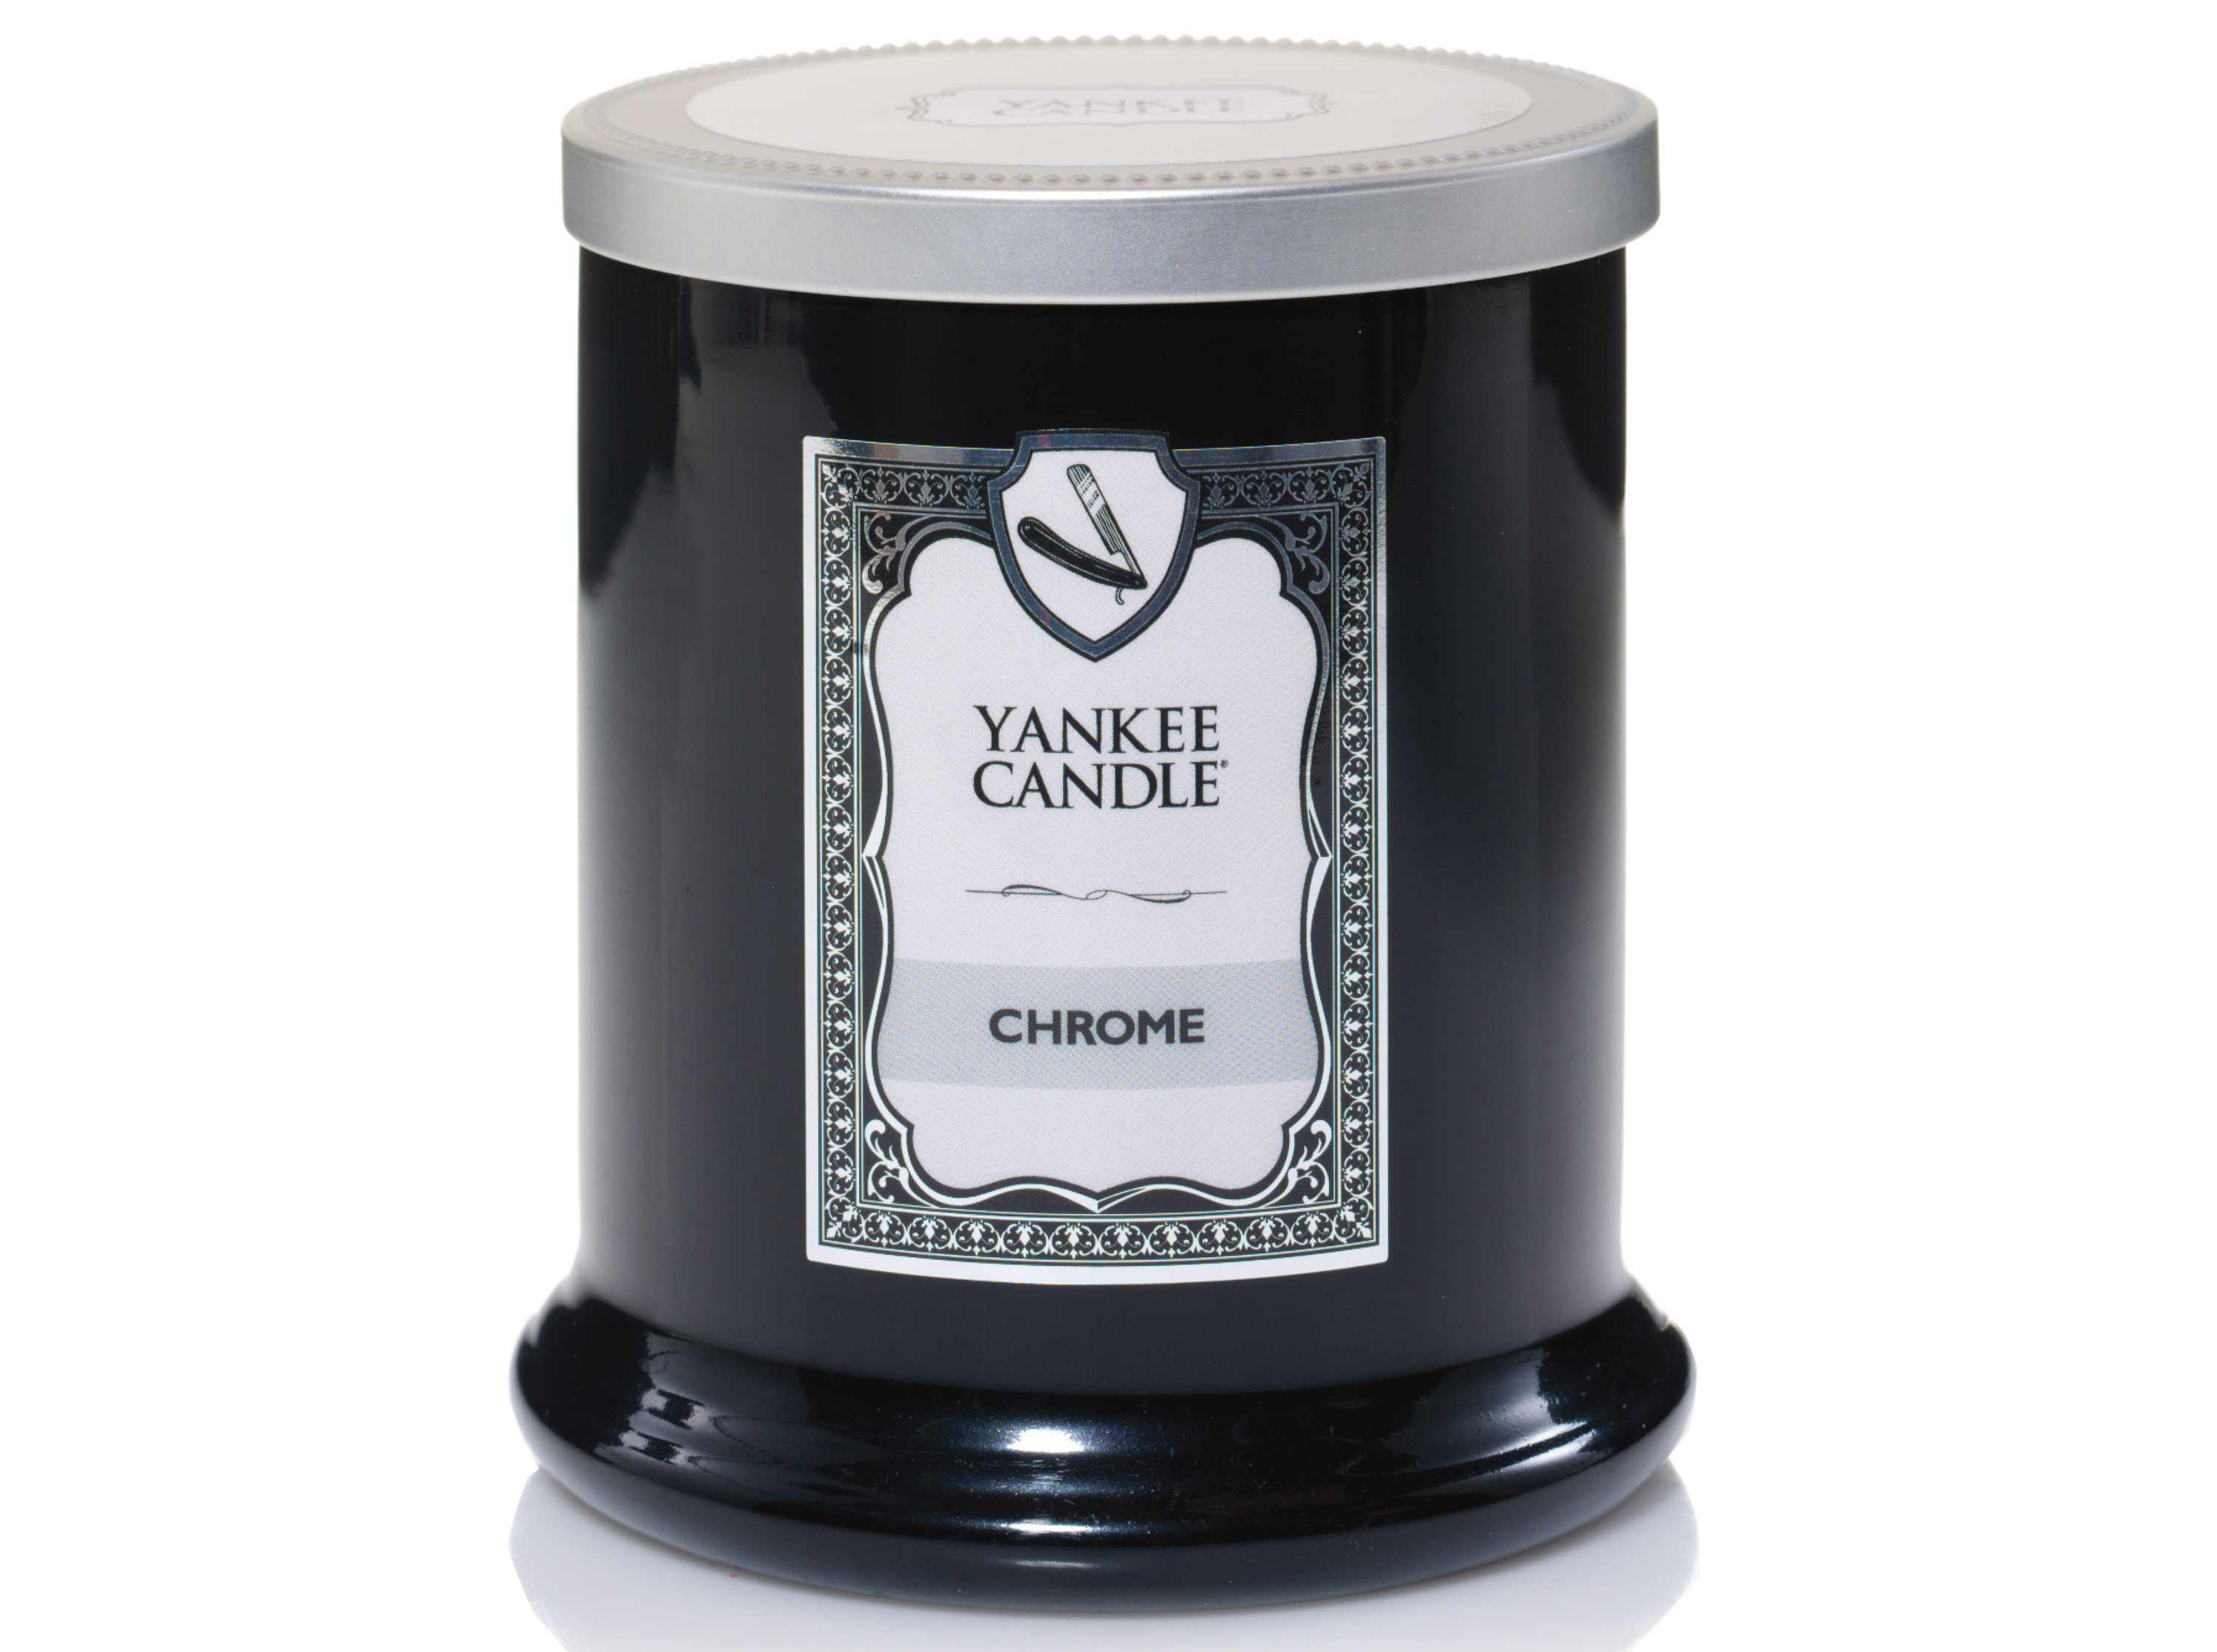 Yankee Candle Chrome